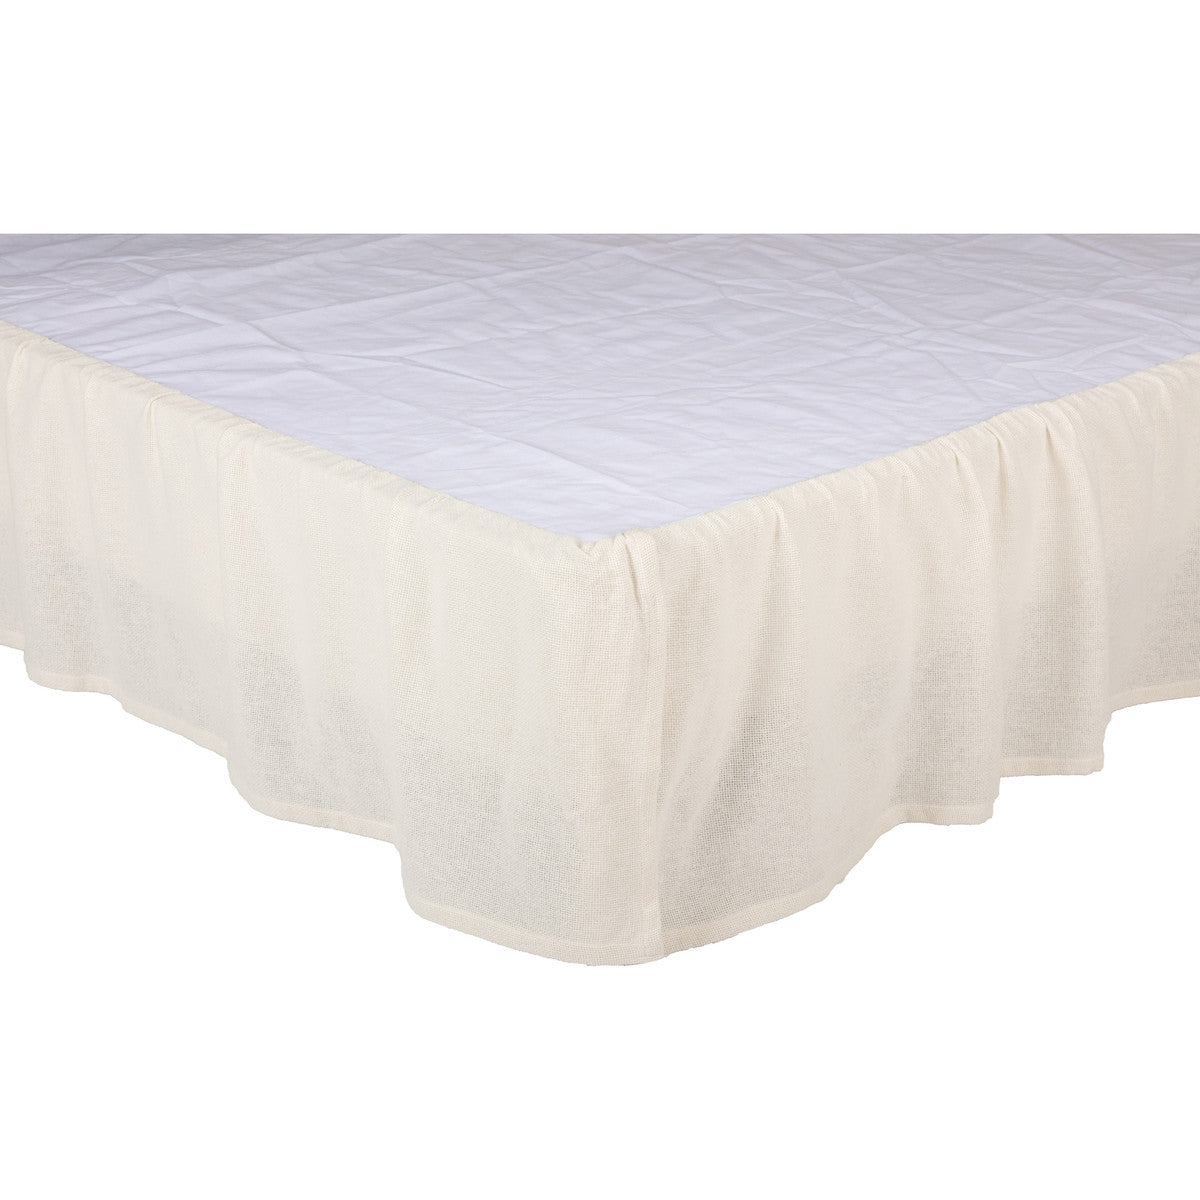 Burlap Antique White Ruffled King Bed Skirt 78x80x16 Allysons Place